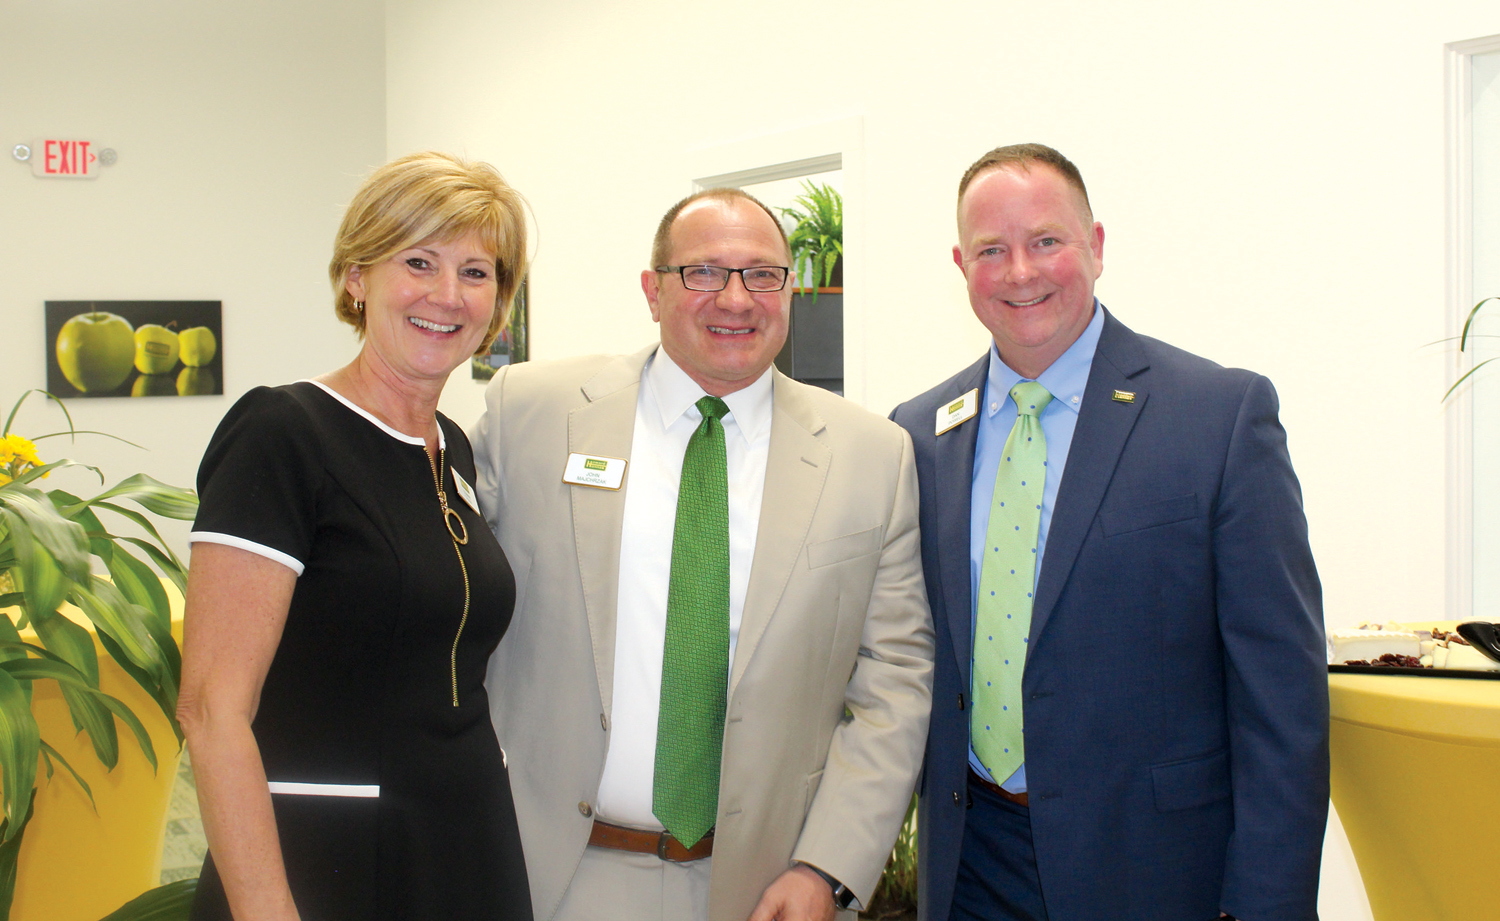 Shown (l-r): Howard Hanna Spencerport Branch Manager Connie Tyson, Rochester Regional Vice President John Majchrzak, and Western New York Corporate Recruiter Dan Powell. Provided photo